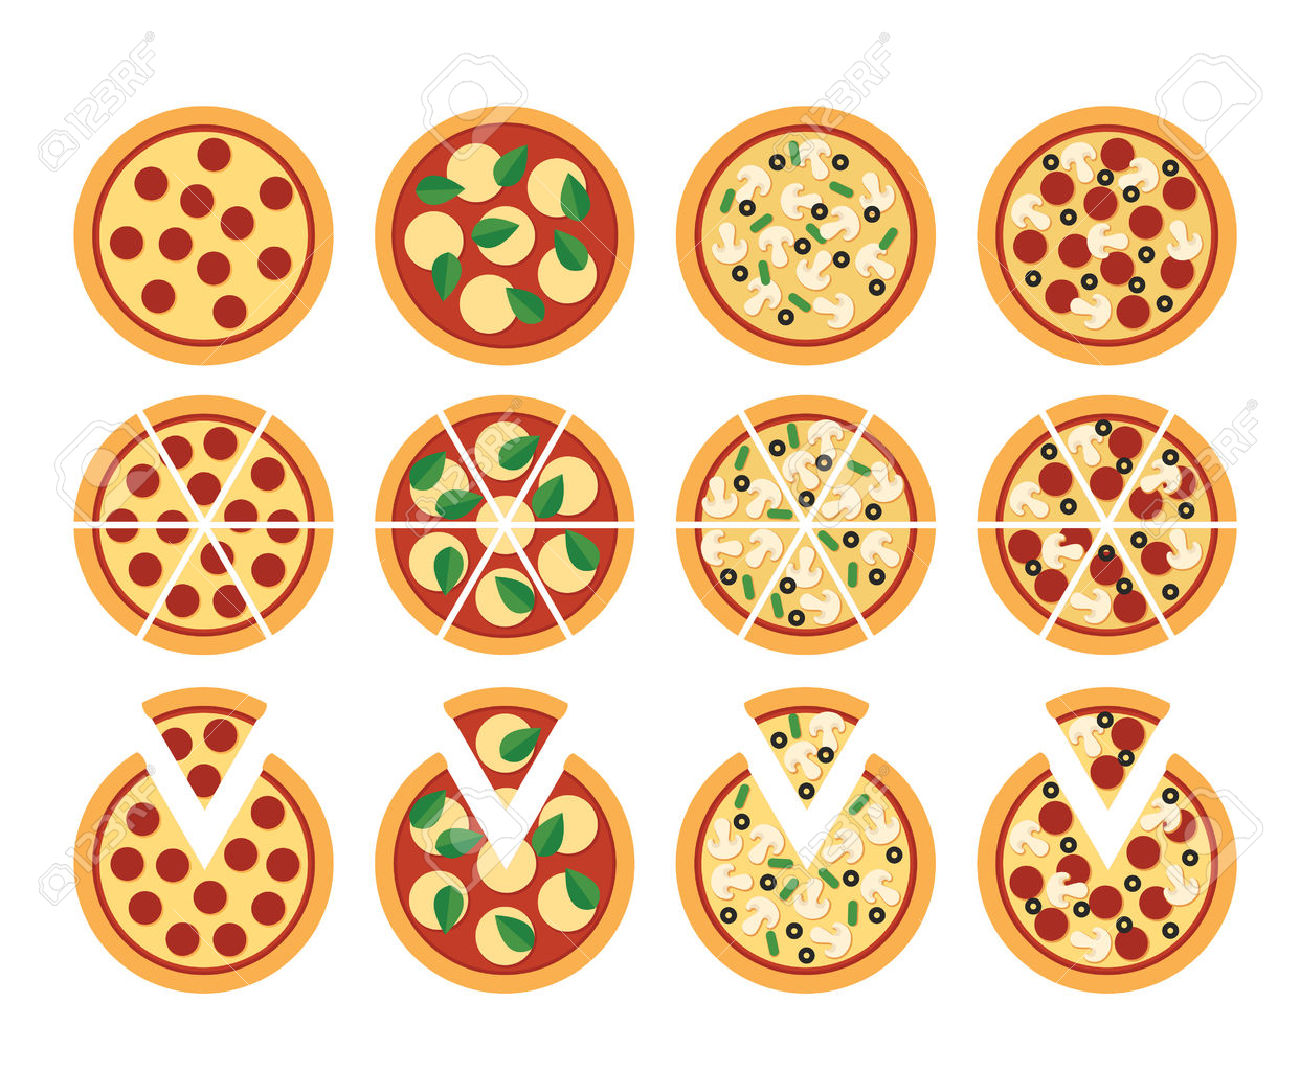 10,084 Pizza Slice Stock Illustrations, Cliparts And Royalty Free.